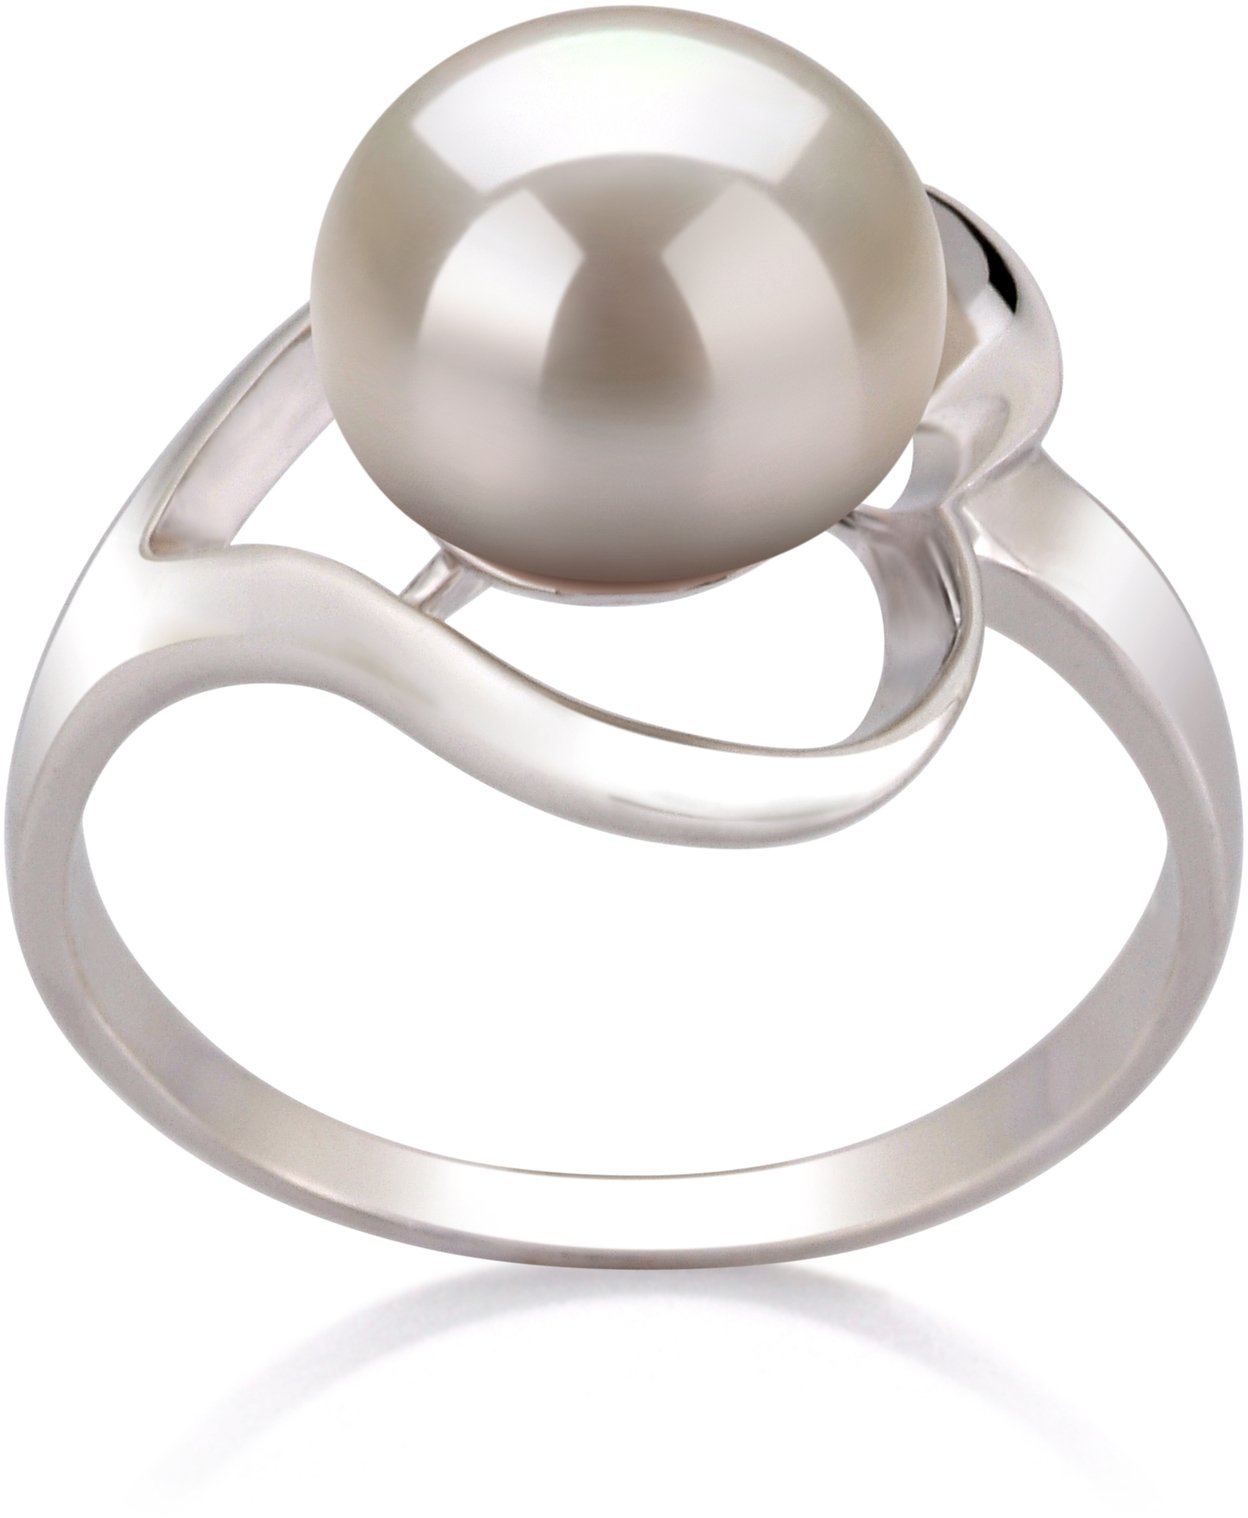 Sadie White 9-10mm AA Quality Freshwater 925 Sterling Silver Cultured Pearl Ring - Size-6